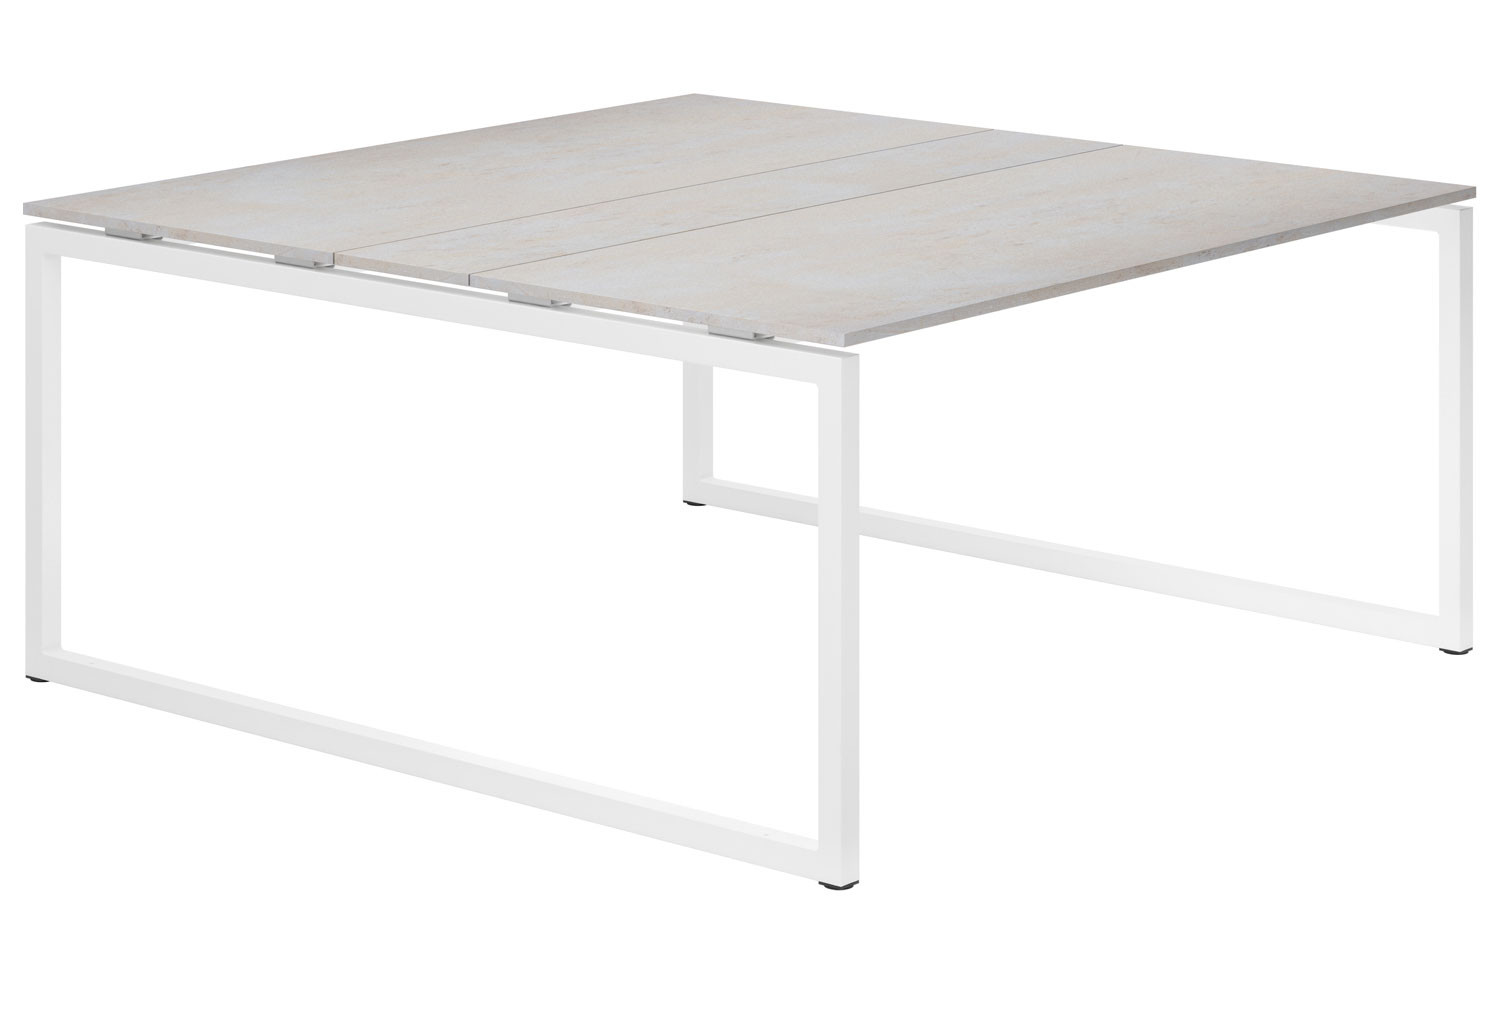 Lasso Hooped Leg 6-8 Person Meeting Table (Concrete)